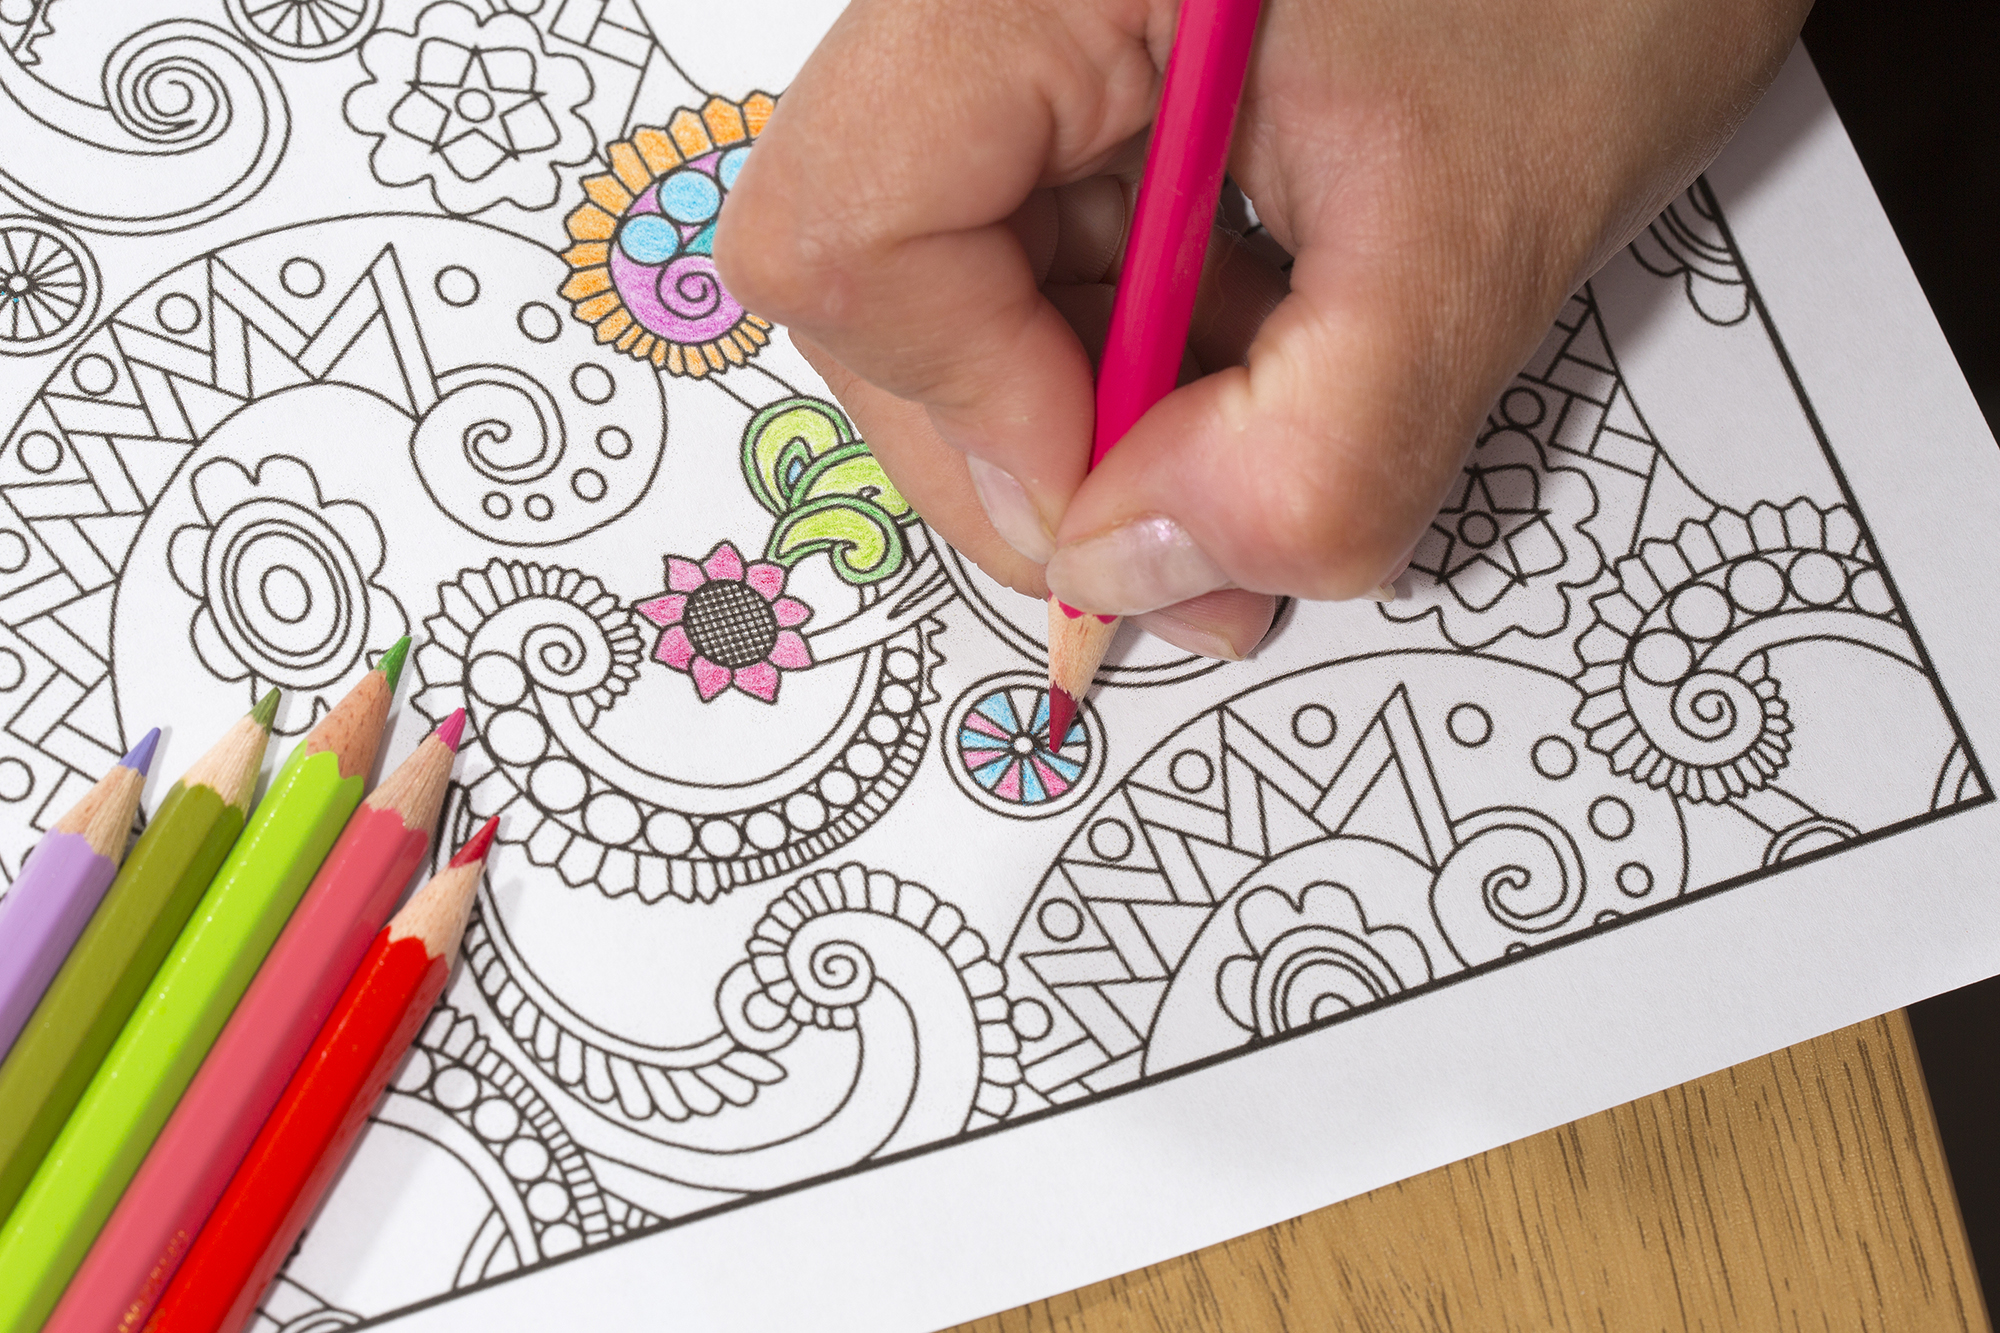 Adult Coloring Books Are Selling Like Crazy Heres Why